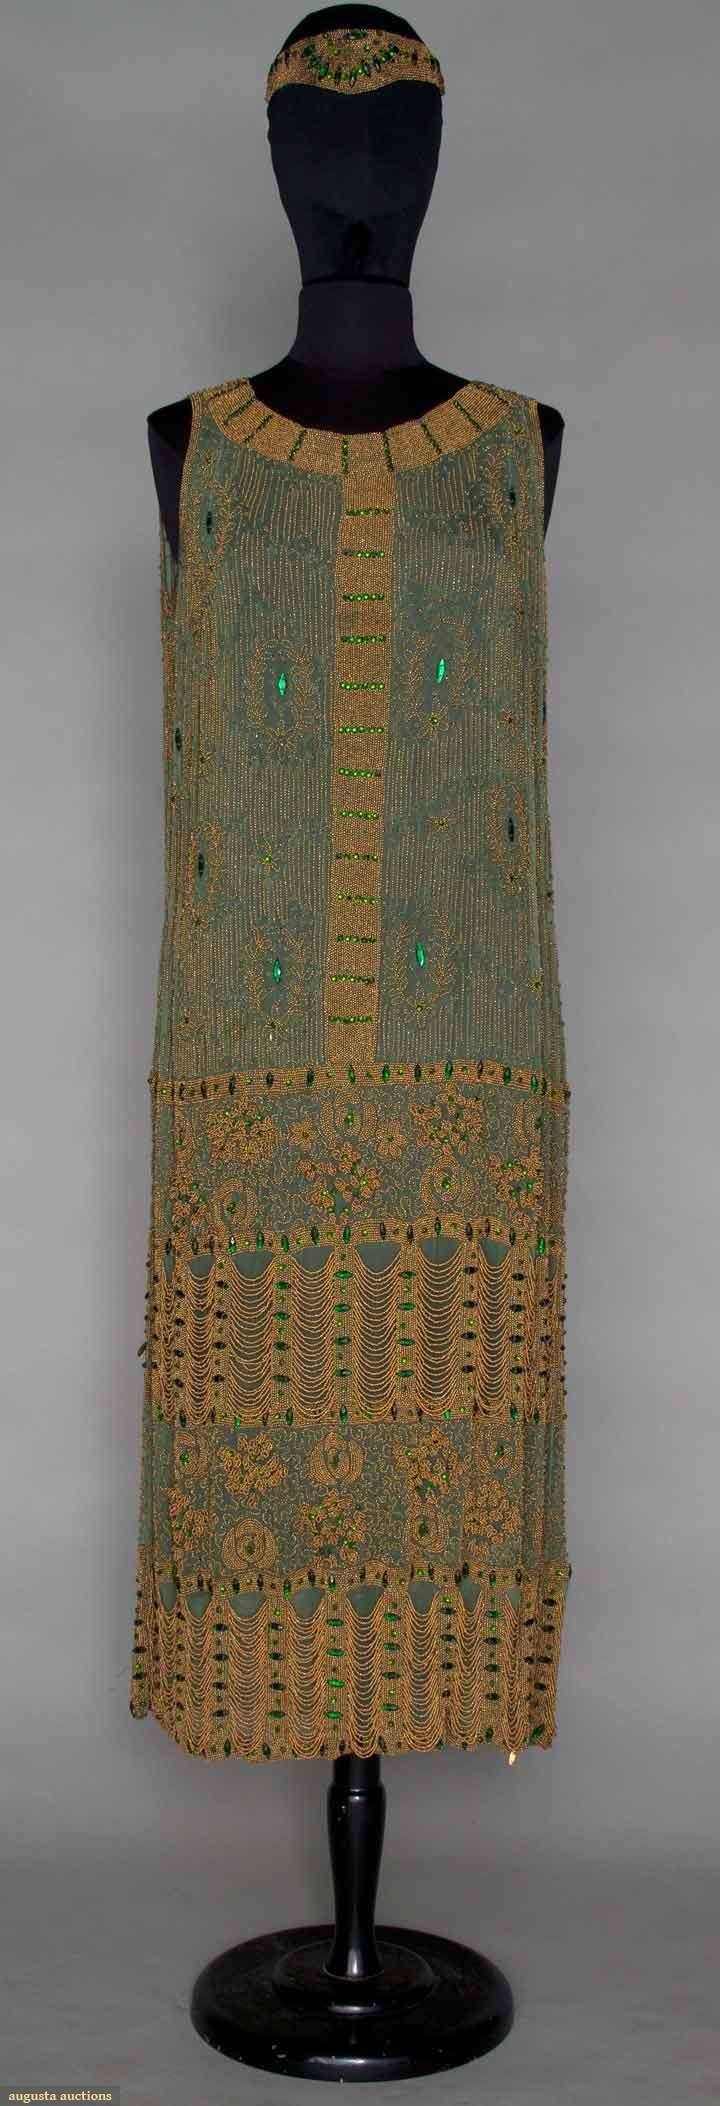 1921 dress and headband, Sage green chiffon completely covered in gold beads & green jewels, deep hem w/ 3 dimensional flowers & 2 deep bands of scalloped gold bead